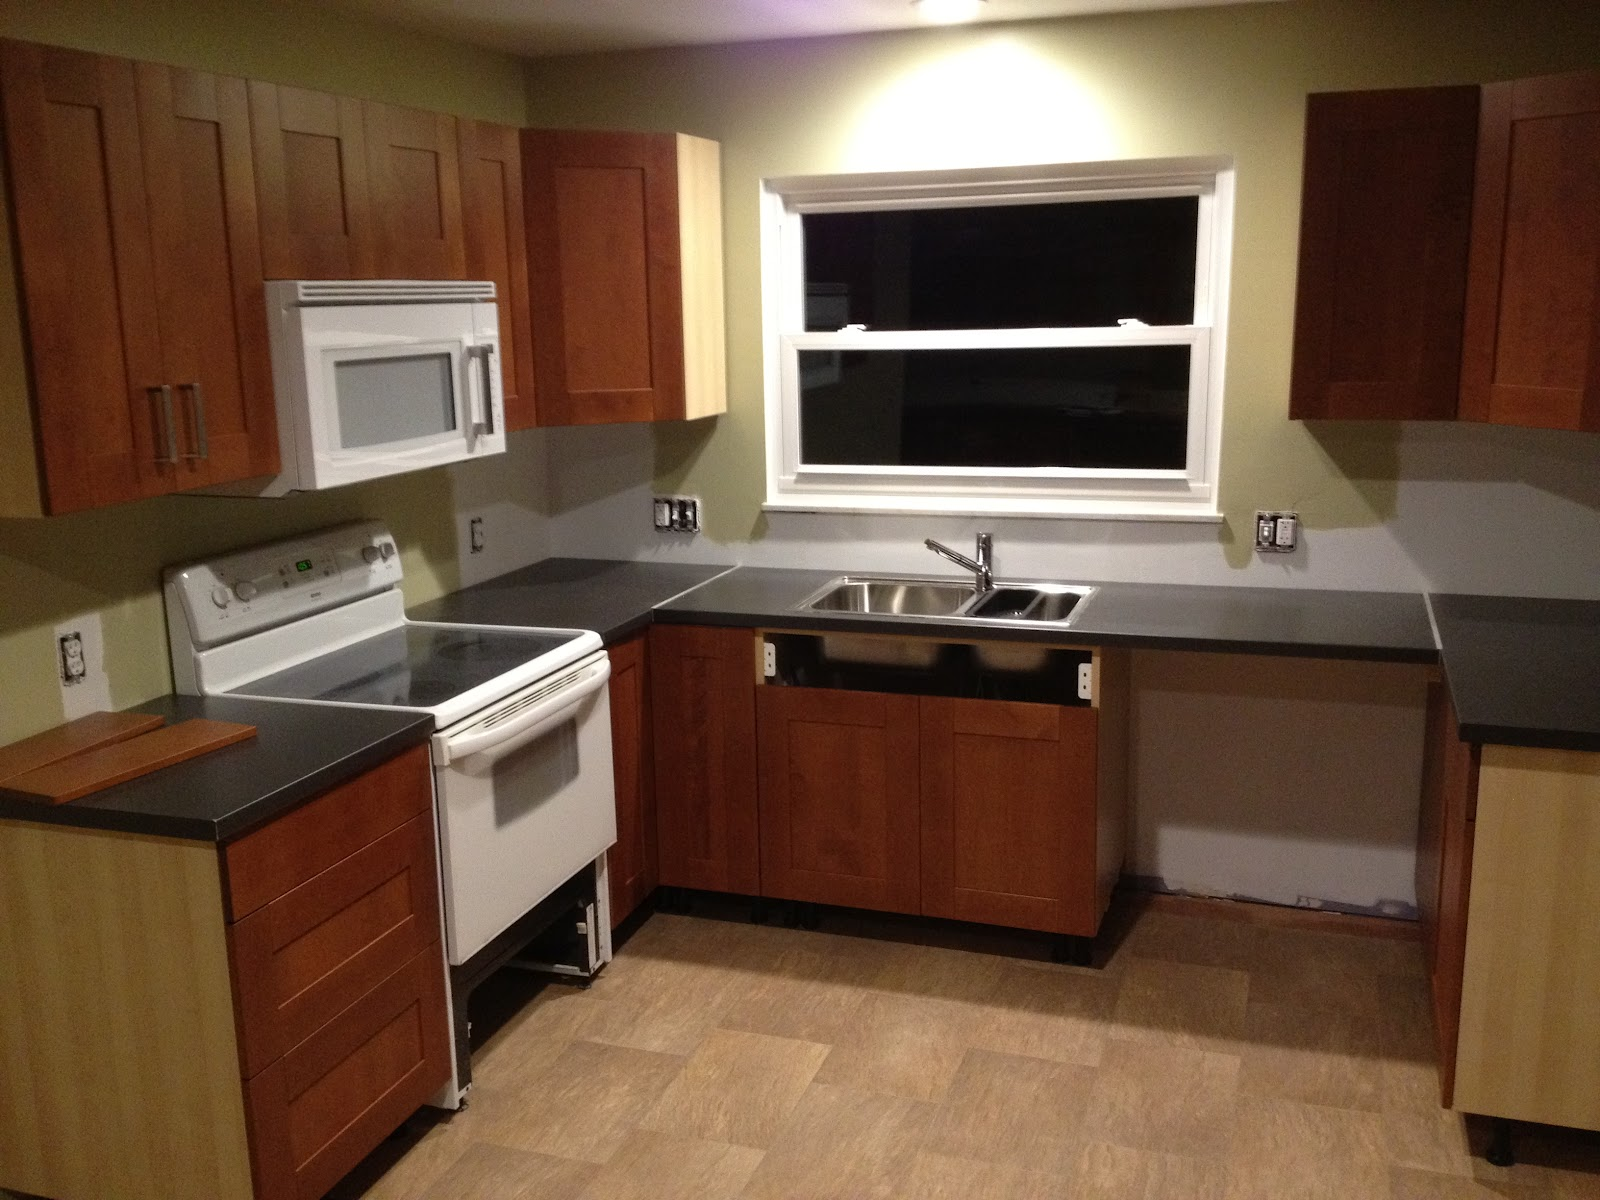 installation remodel photos countertops quartz deductour cabinets countertop designs using ikea ideas com house